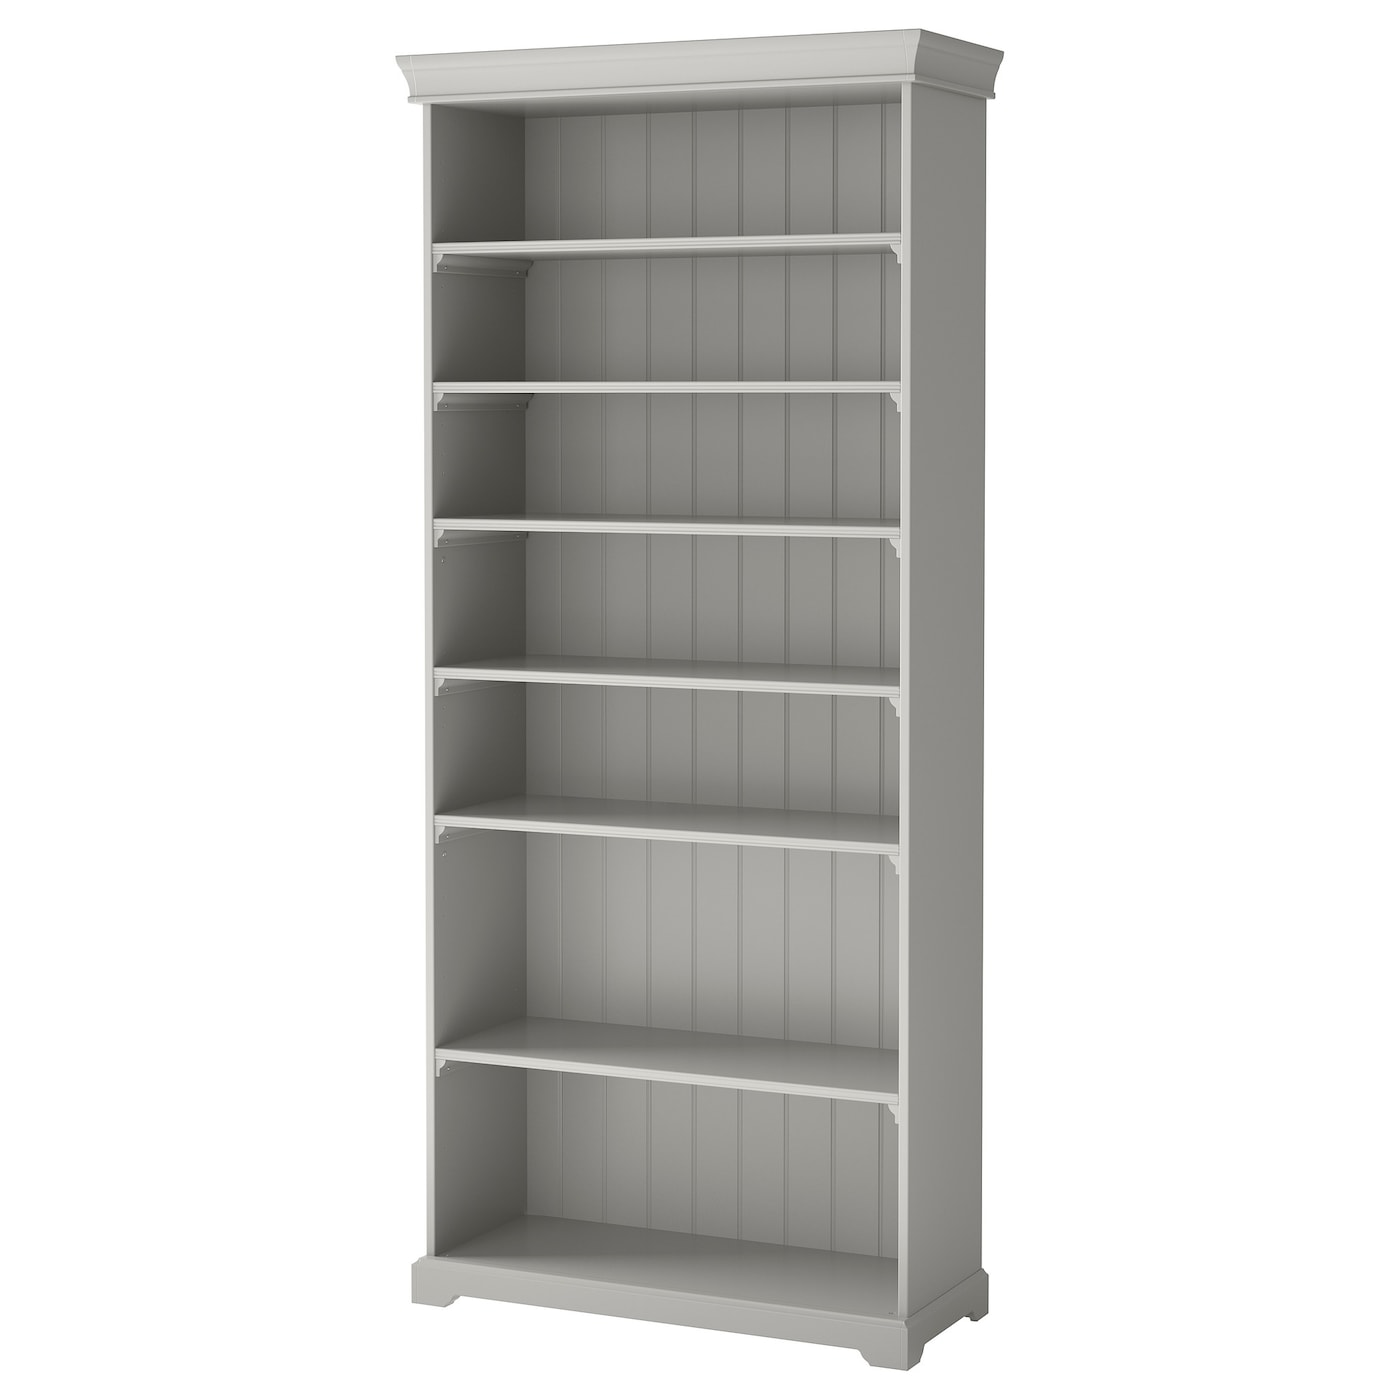 Liatorp bookcase grey 96x214 cm ikea for Ikea wooden bookshelf